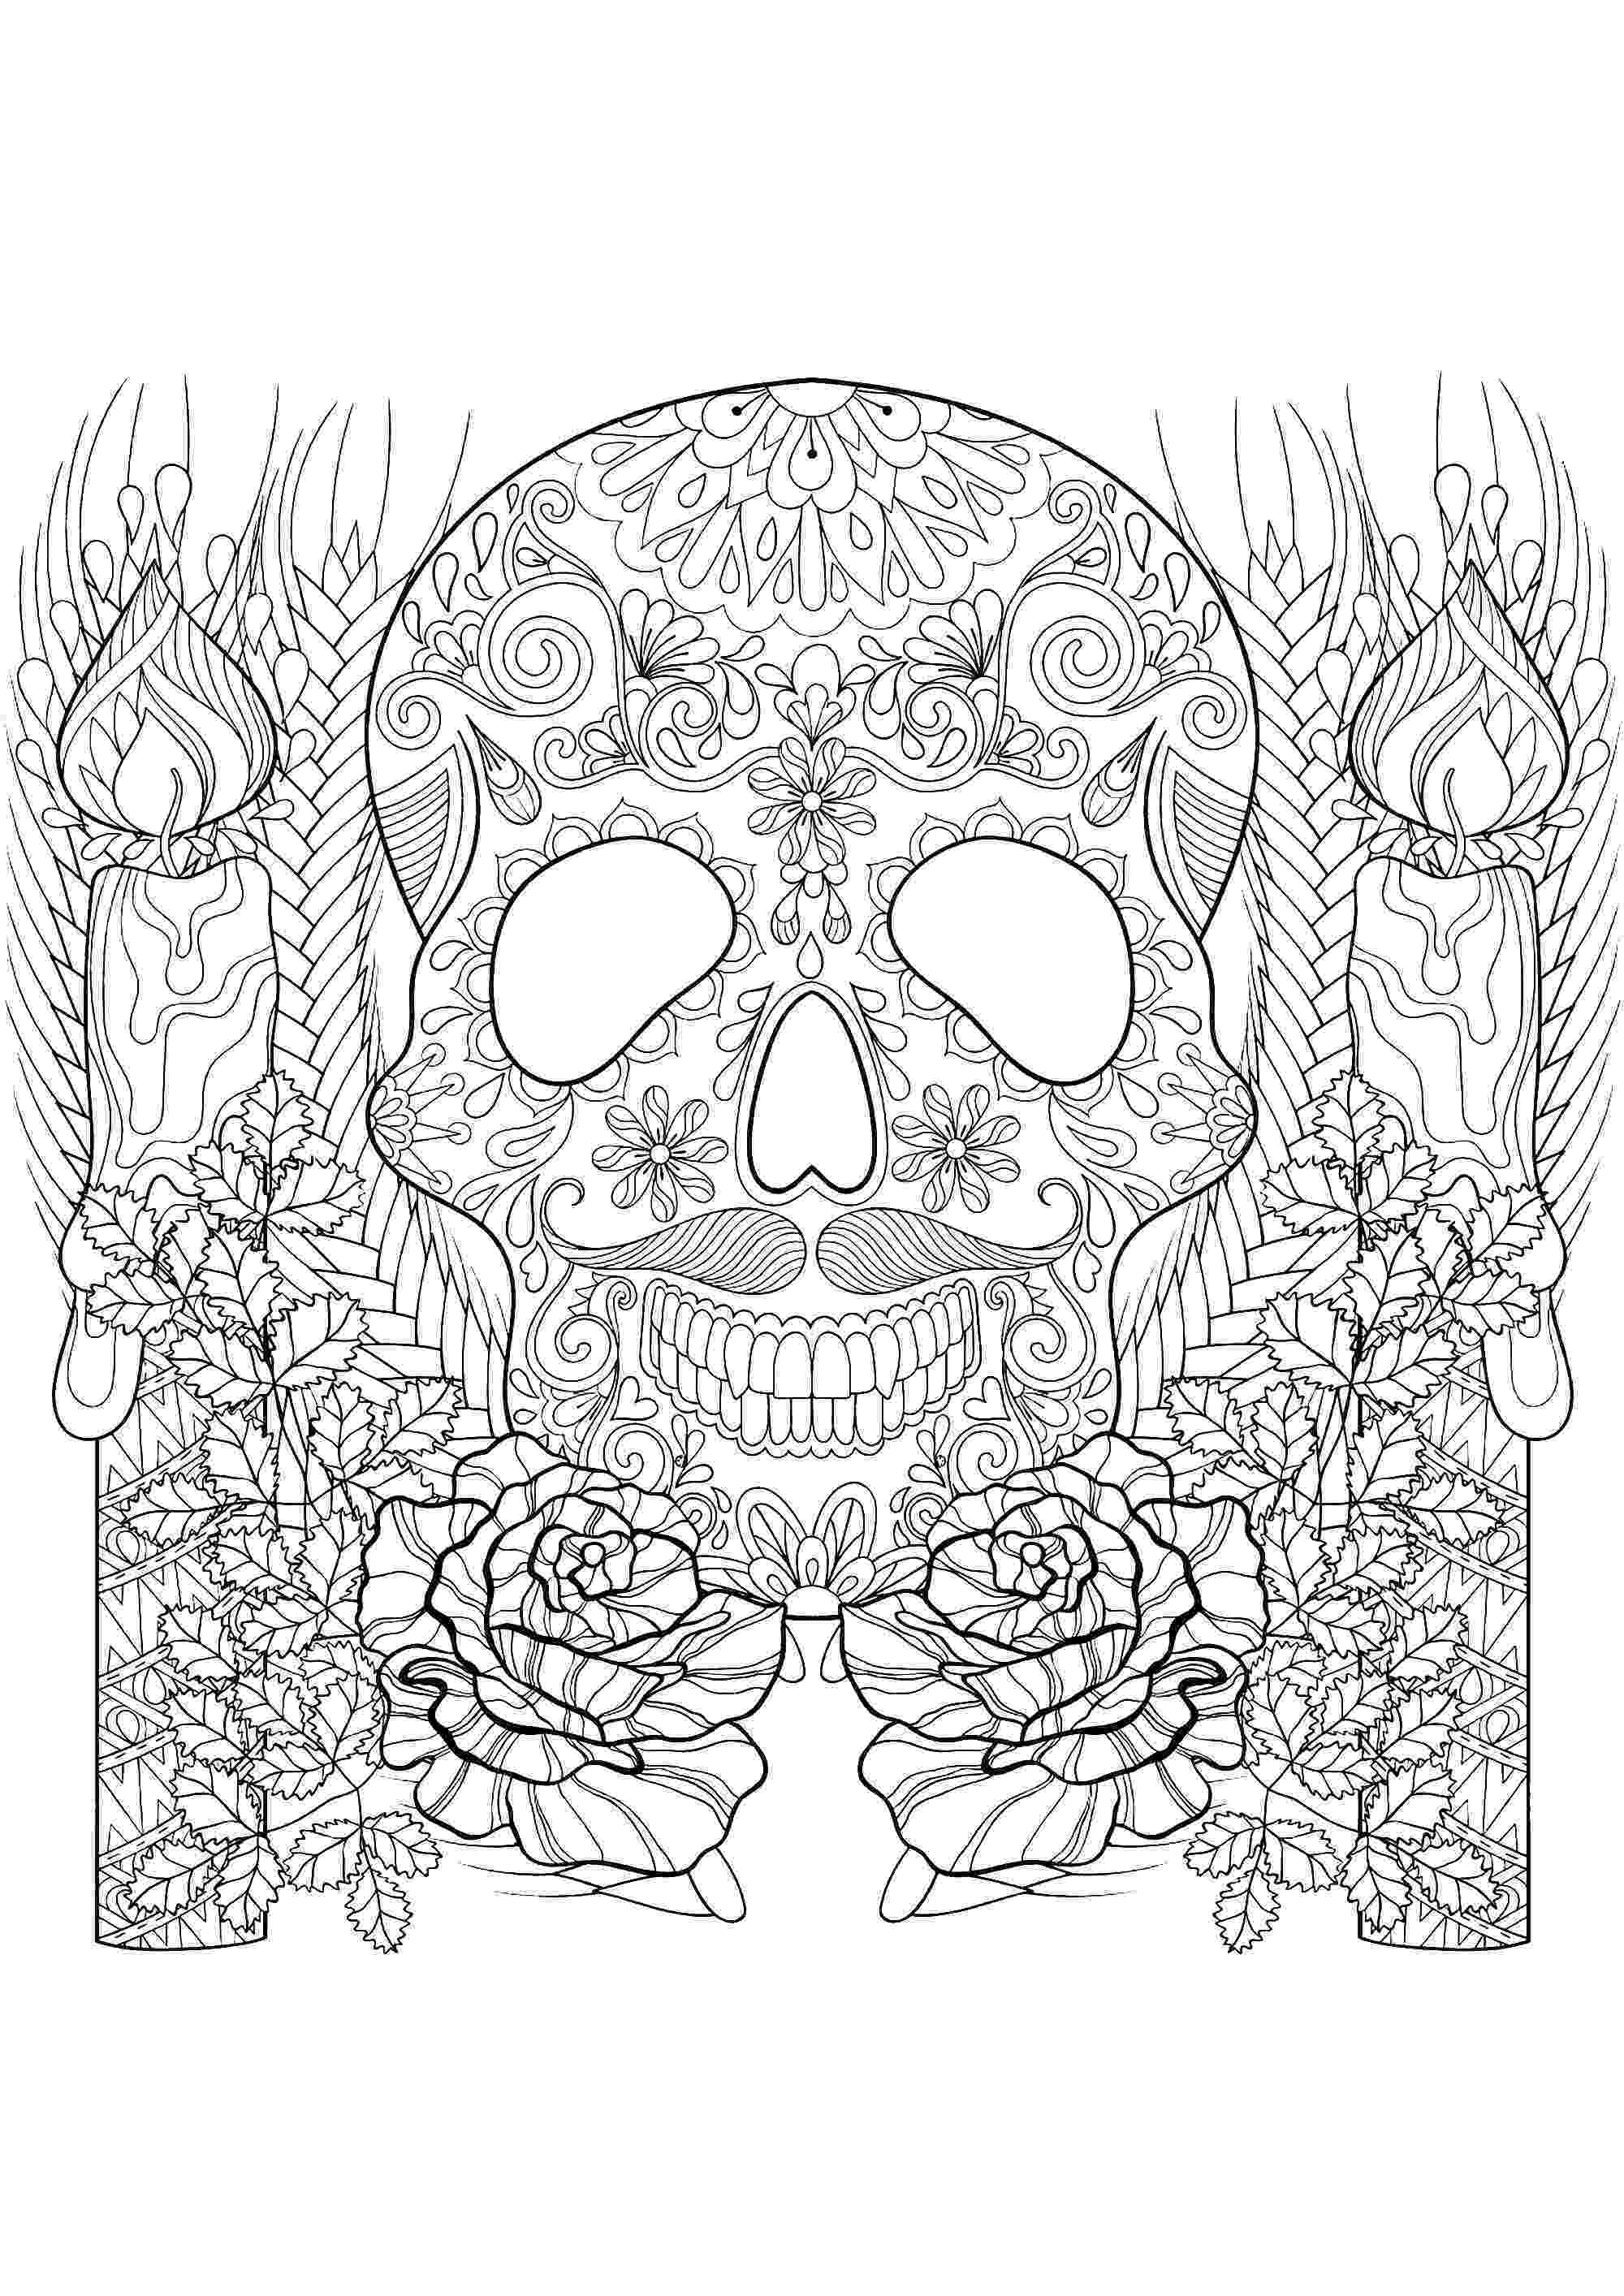 coloring book for adults where to skull and candles halloween adult coloring pages for where adults coloring to book